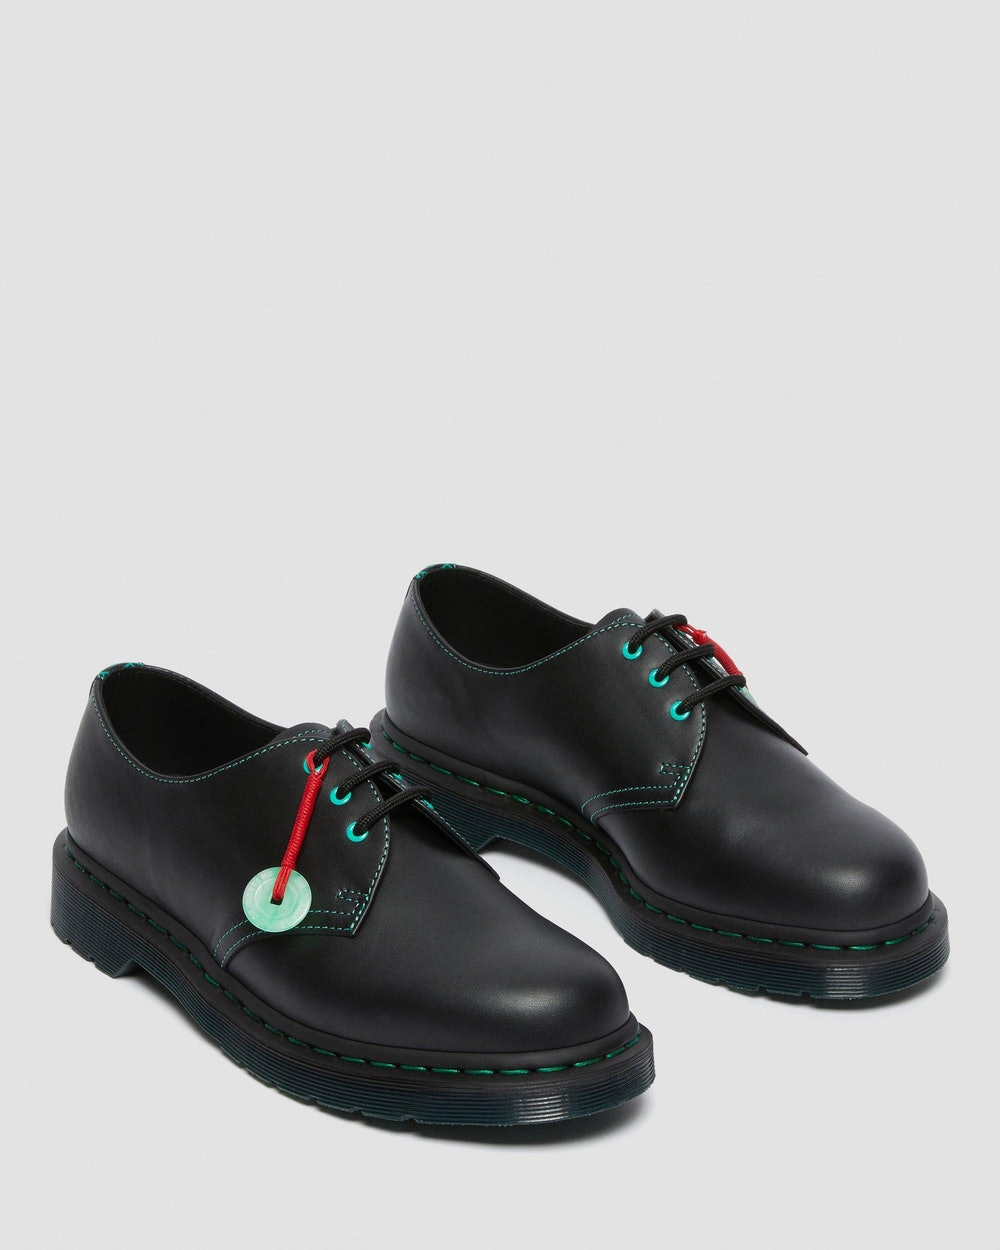 1461 Chinese New Year Leather Oxford Shoes